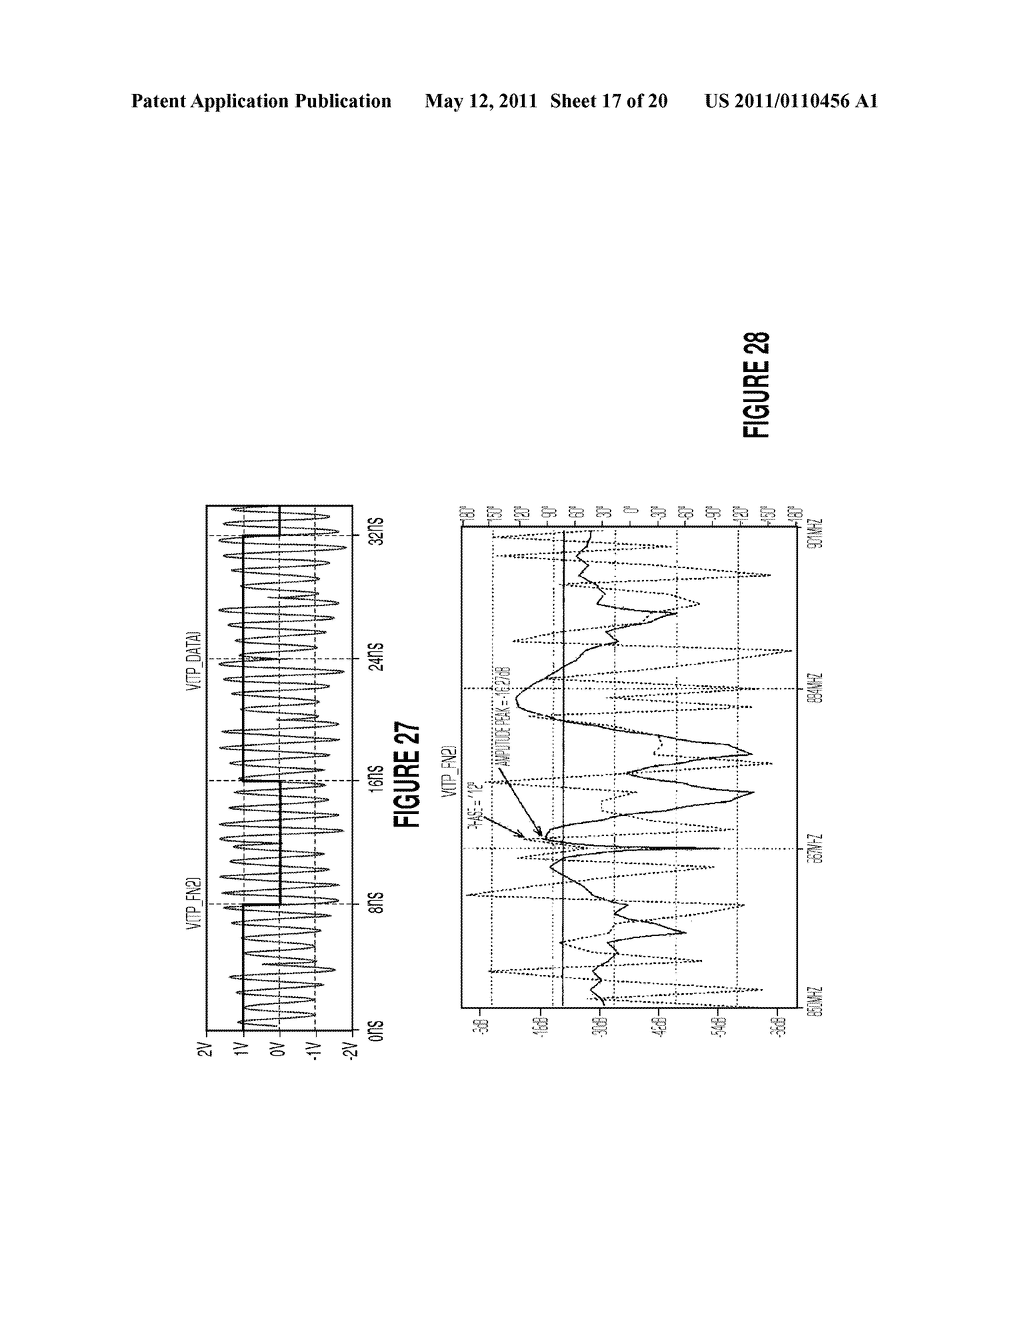 Common Wave and Sideband Mitigation Communication Systems And Methods For Increasing Communication Speeds, Spectral Efficiency and Enabling Other Benefits - diagram, schematic, and image 18